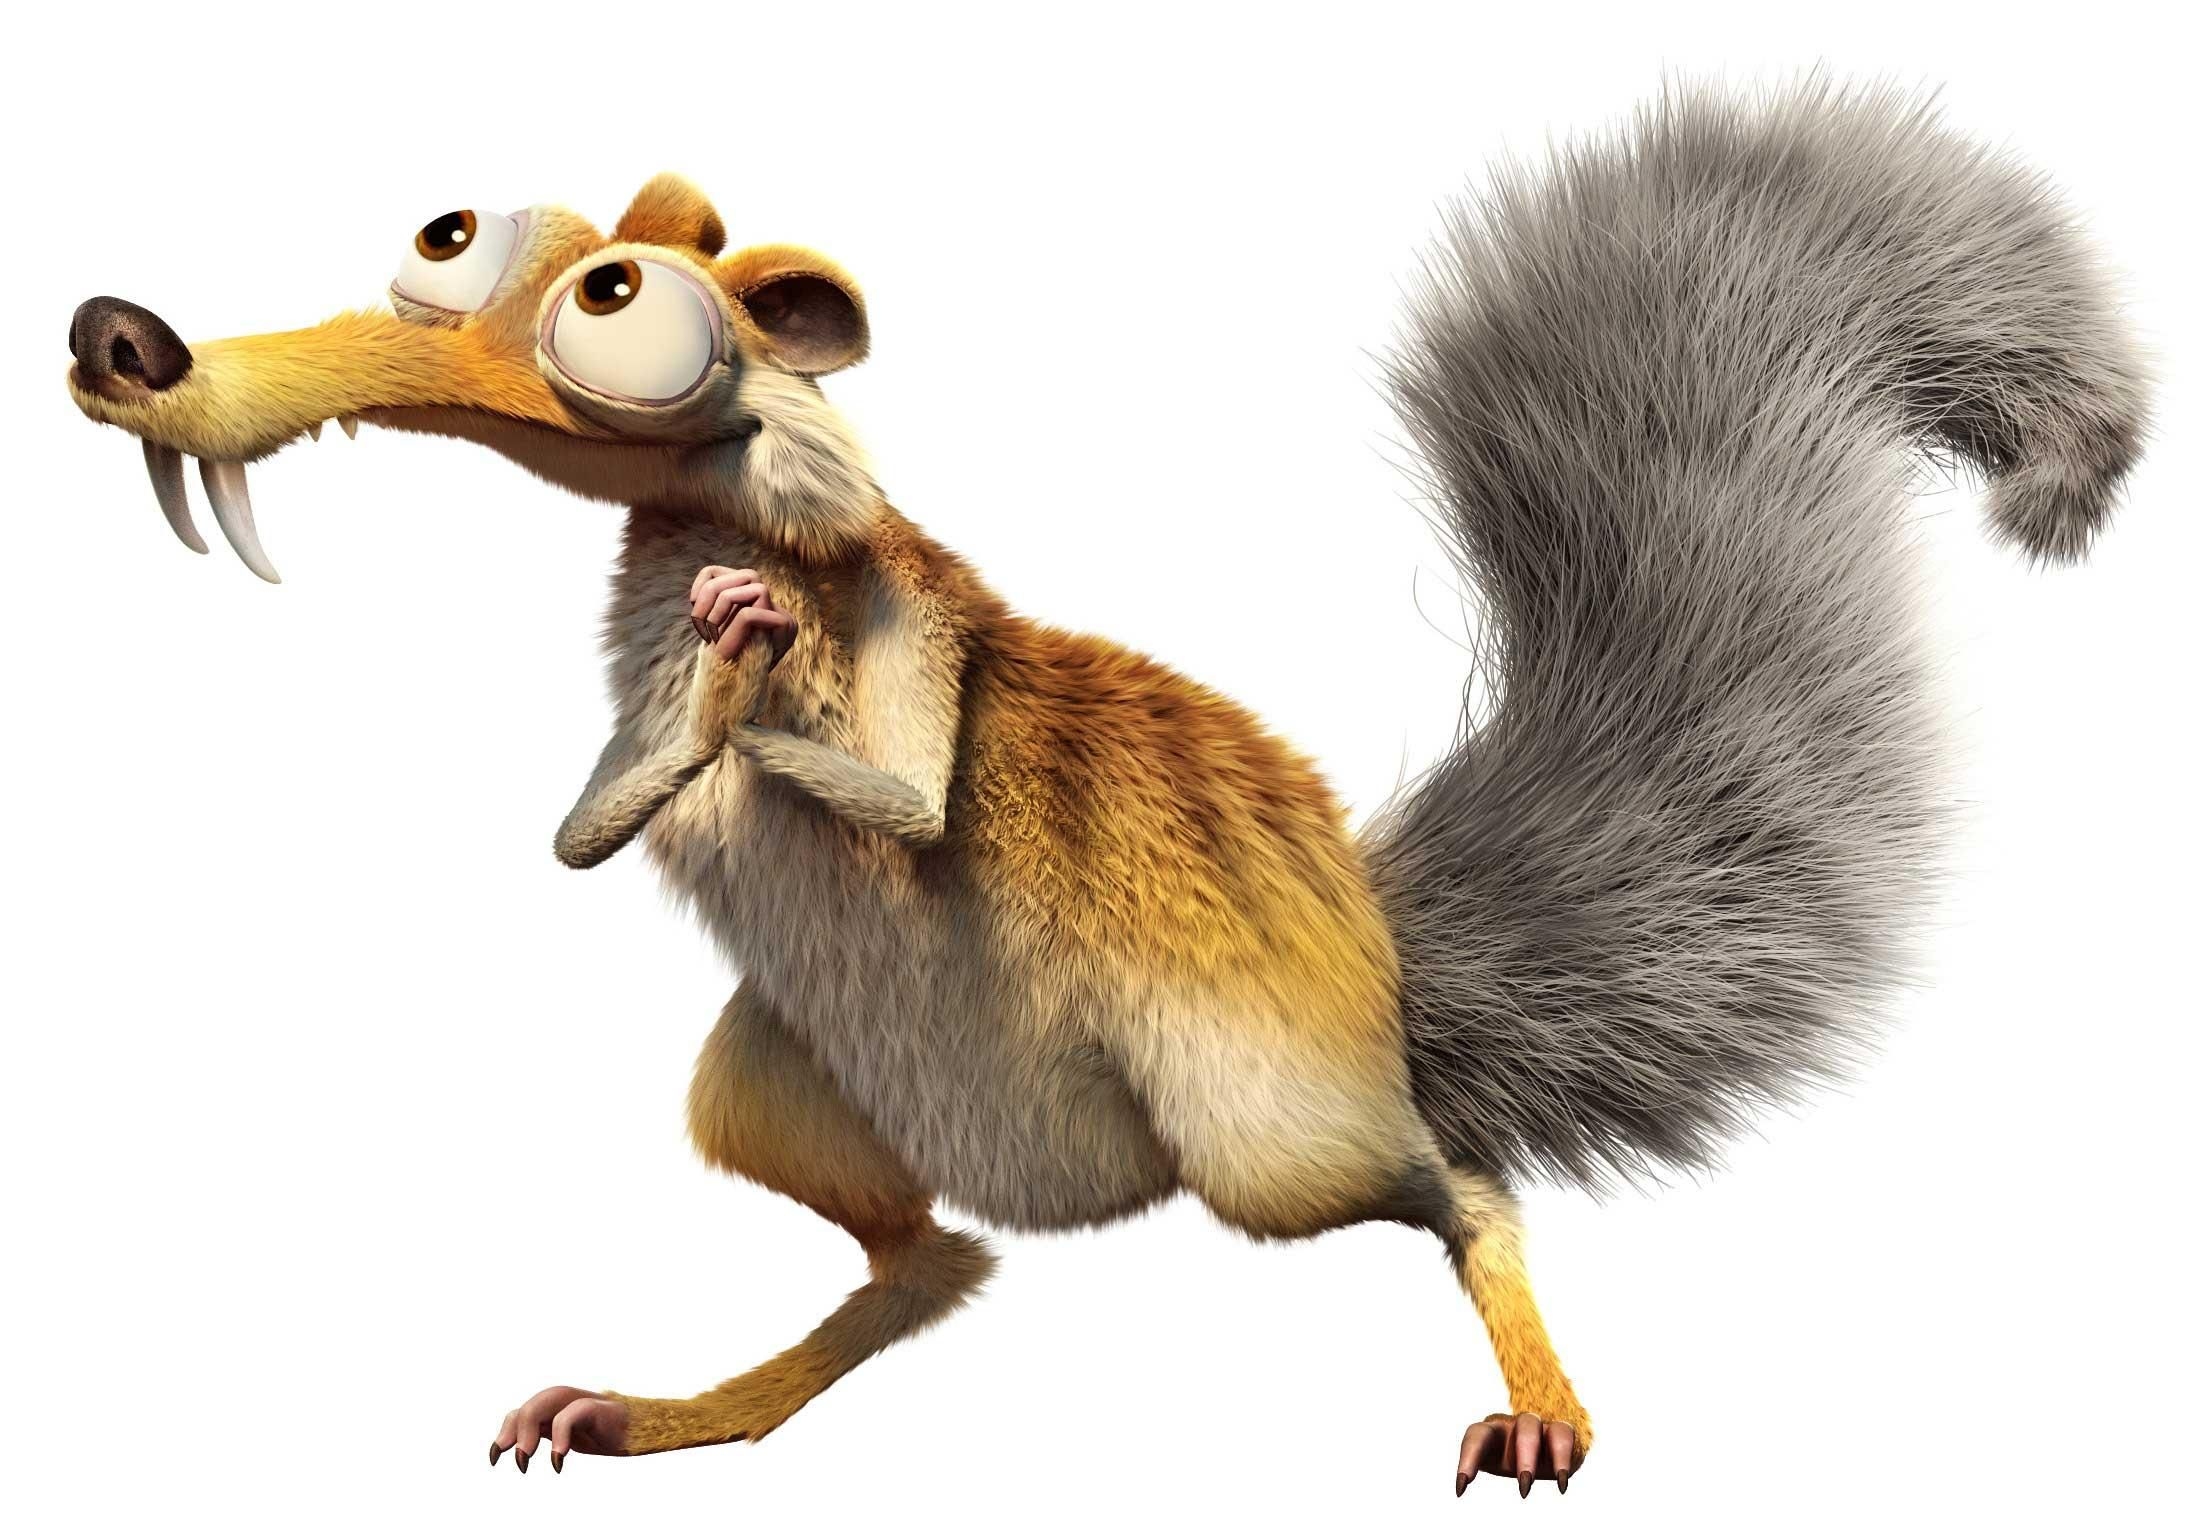 Good Squirrel From Ice Age #1 - Ice Age Characters Squirrel   Ice ...